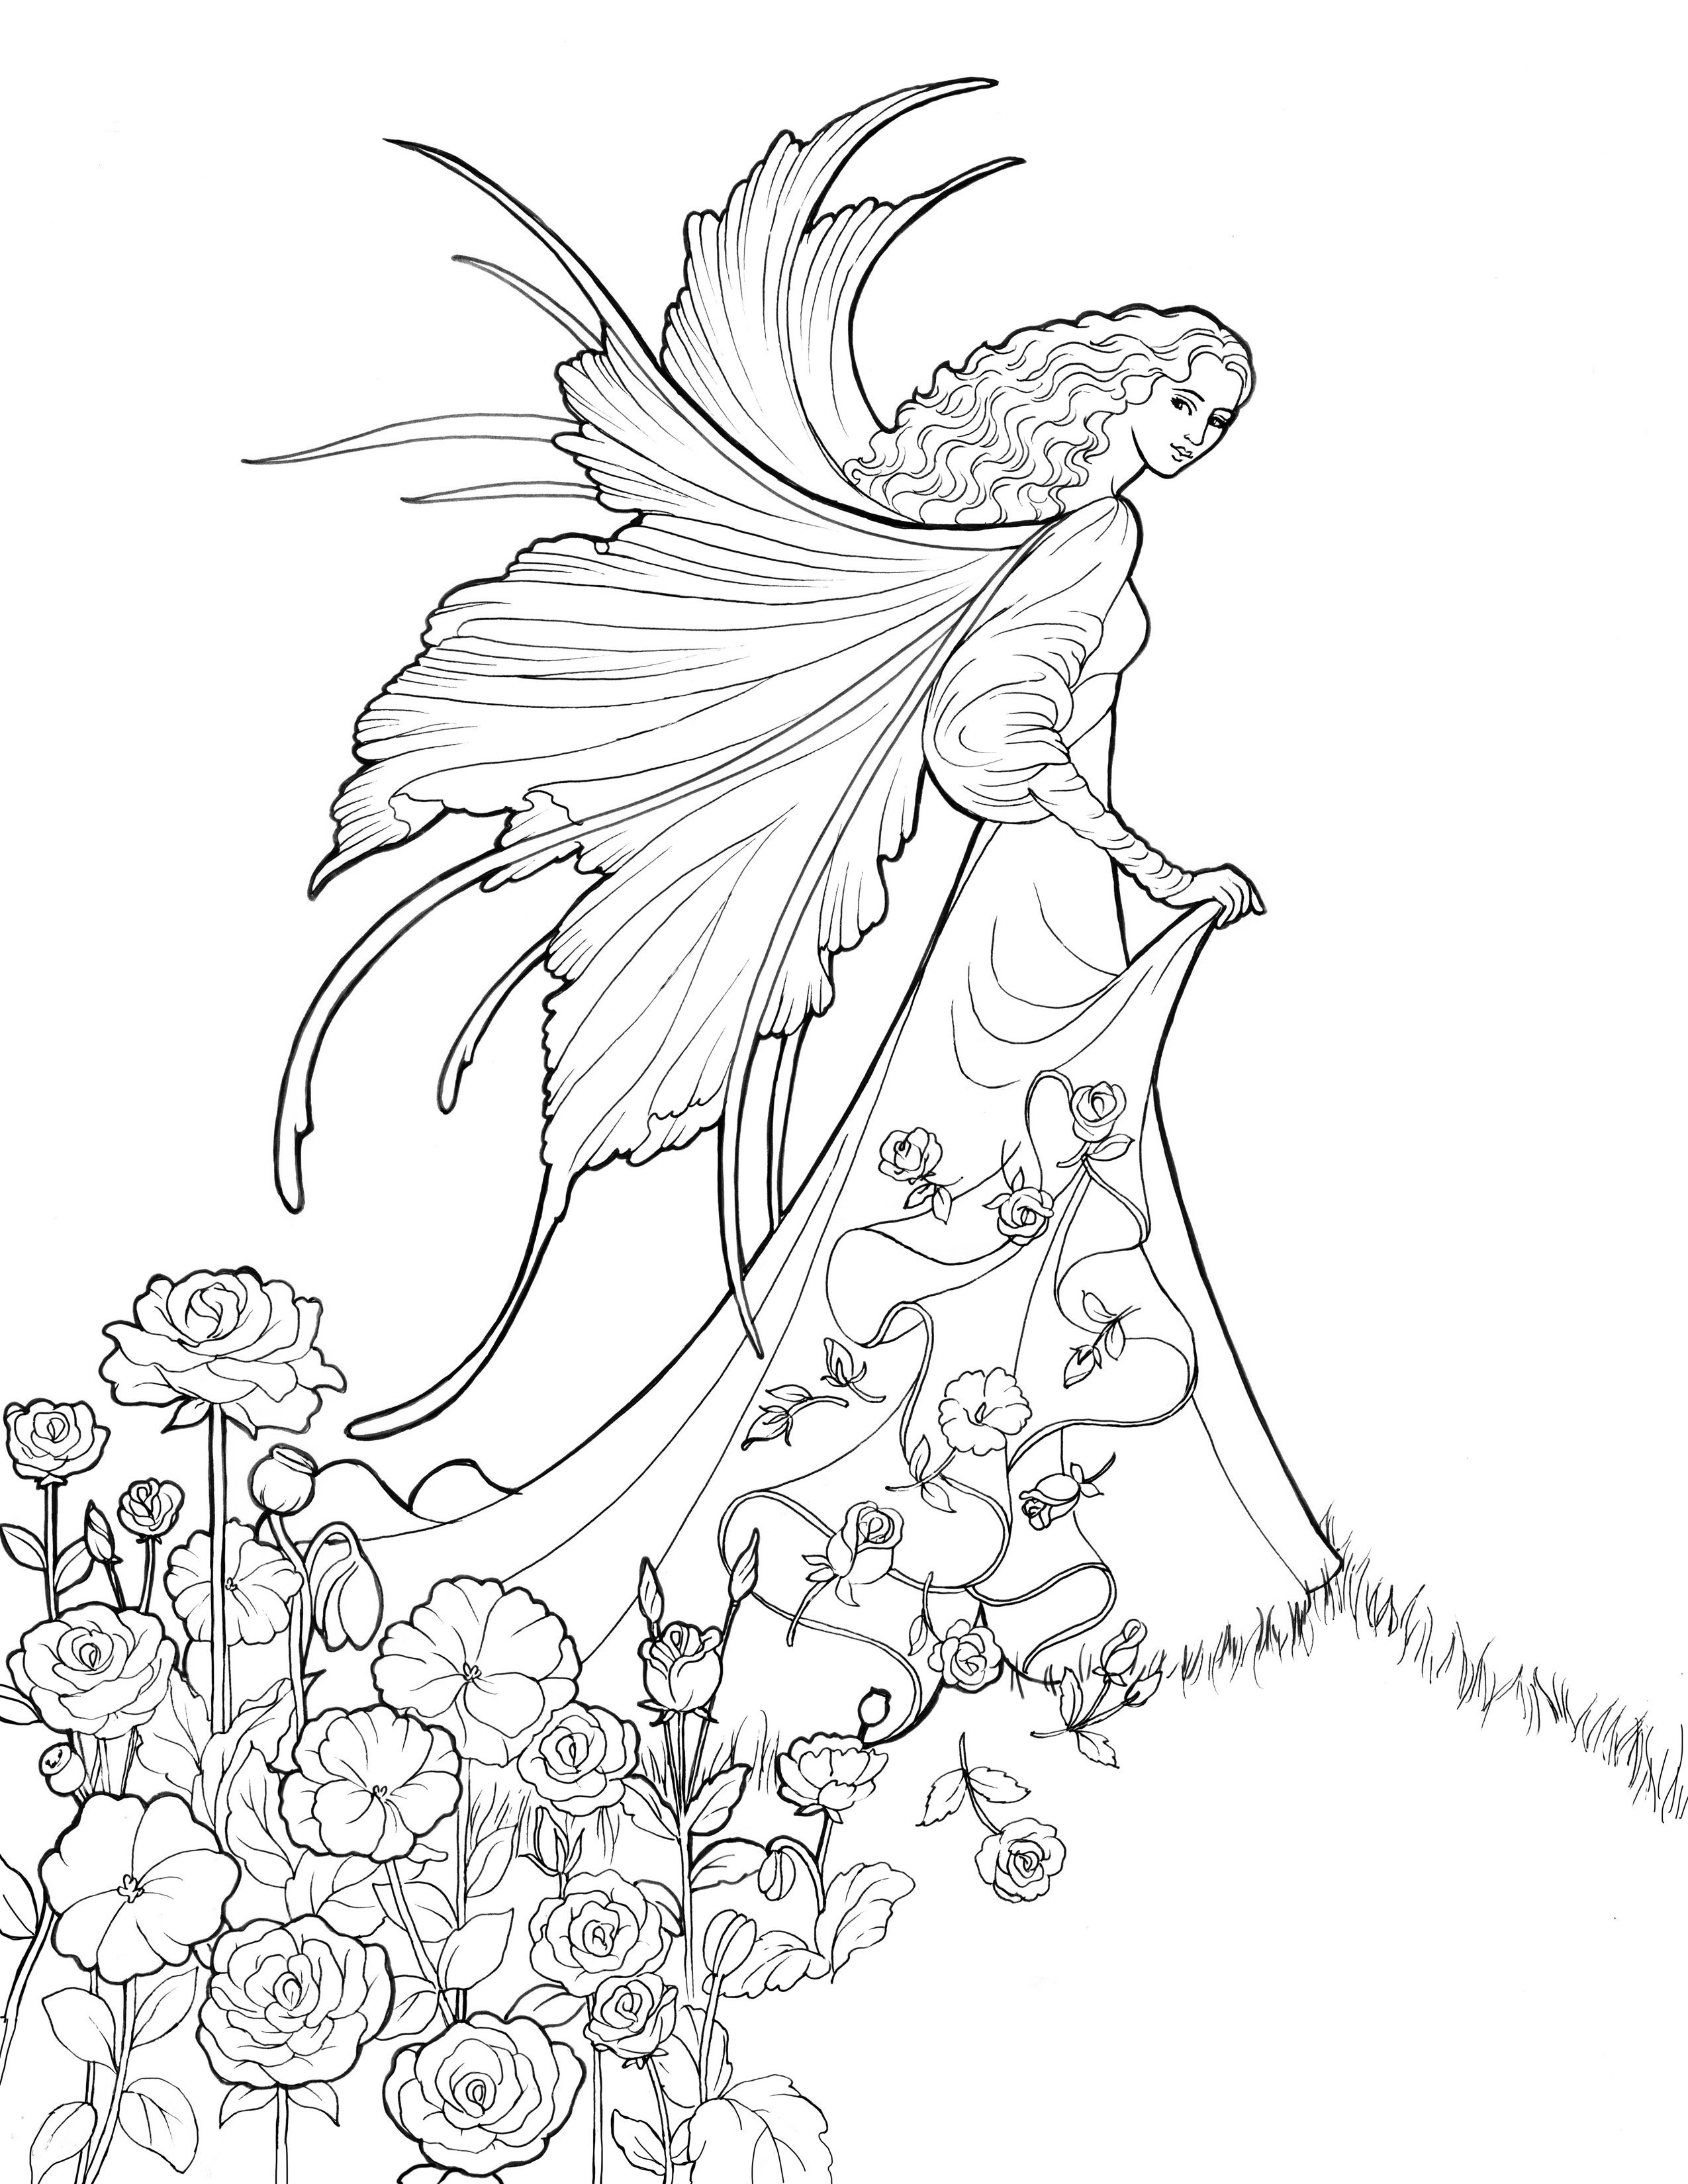 halloween fairy coloring pages pin by beth conroy on color fairiesangels halloween fairy halloween pages coloring